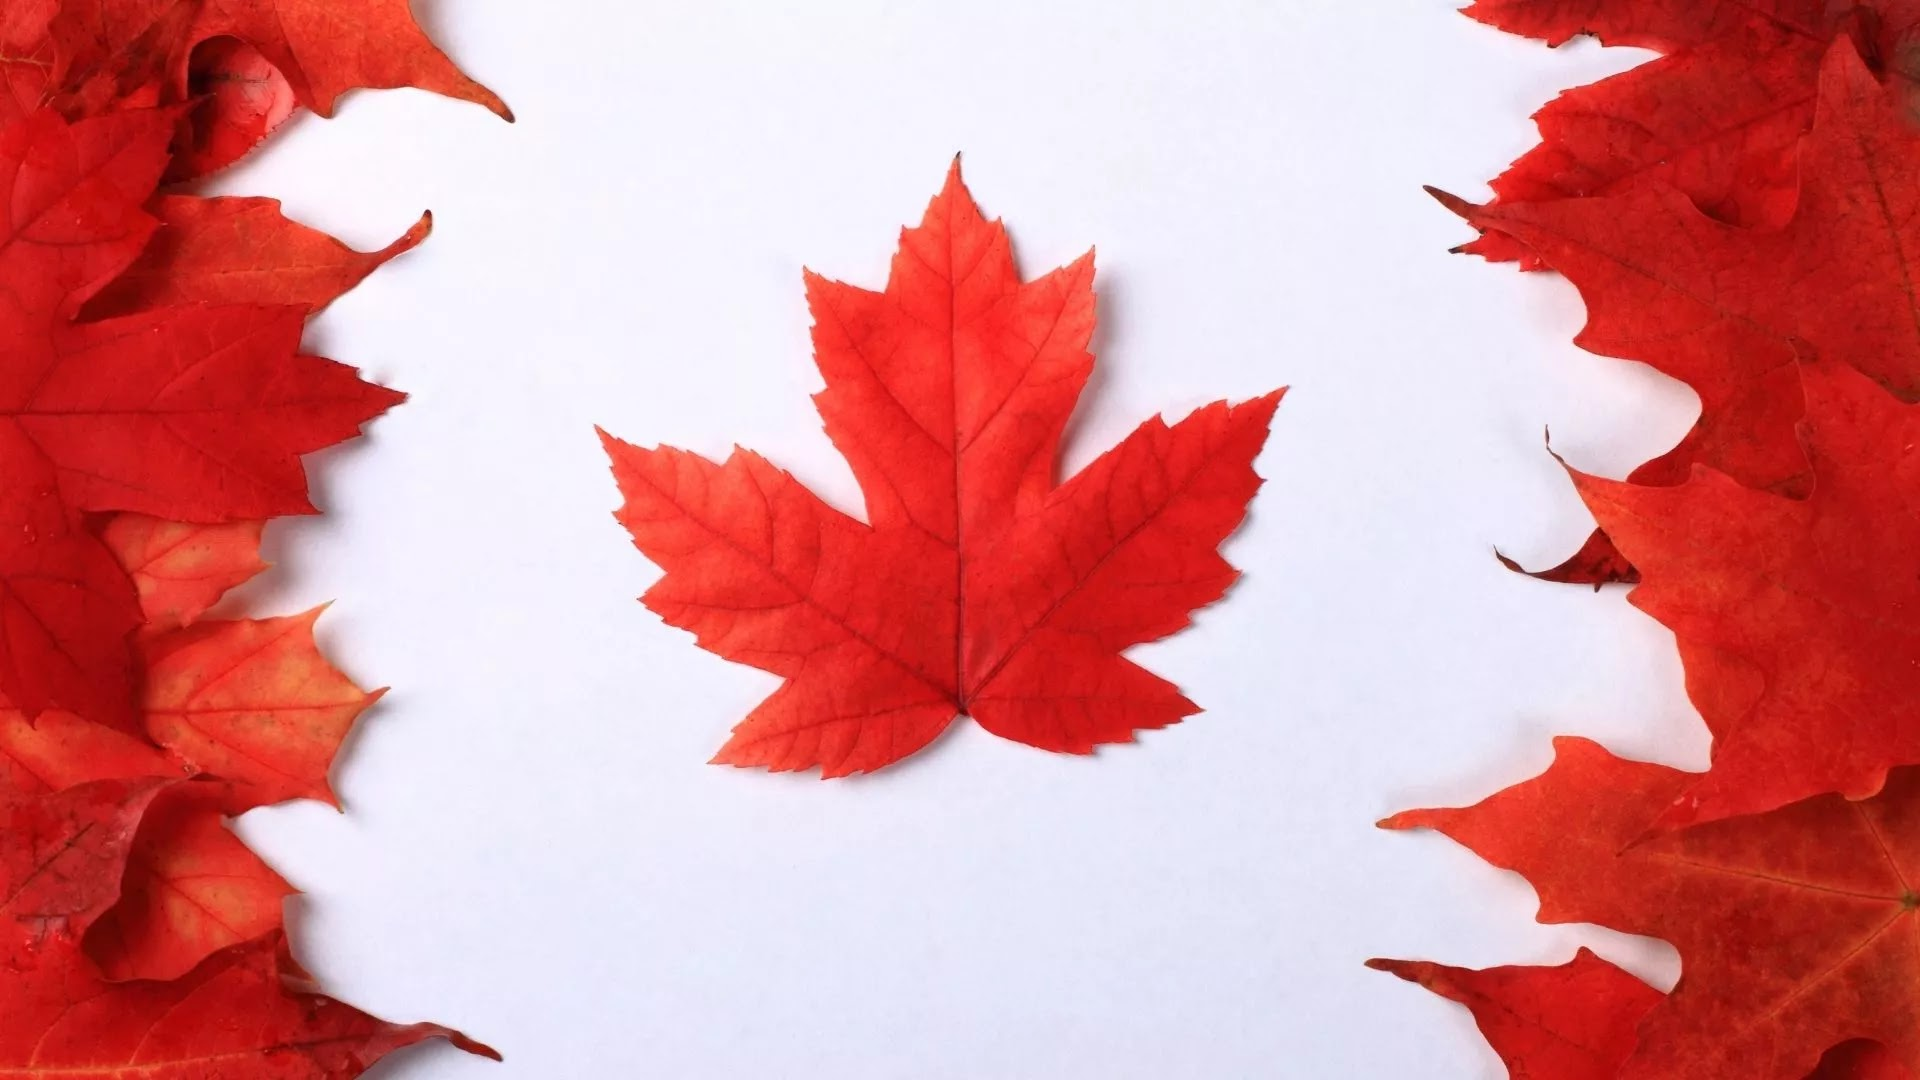 Canada flag full HD image download